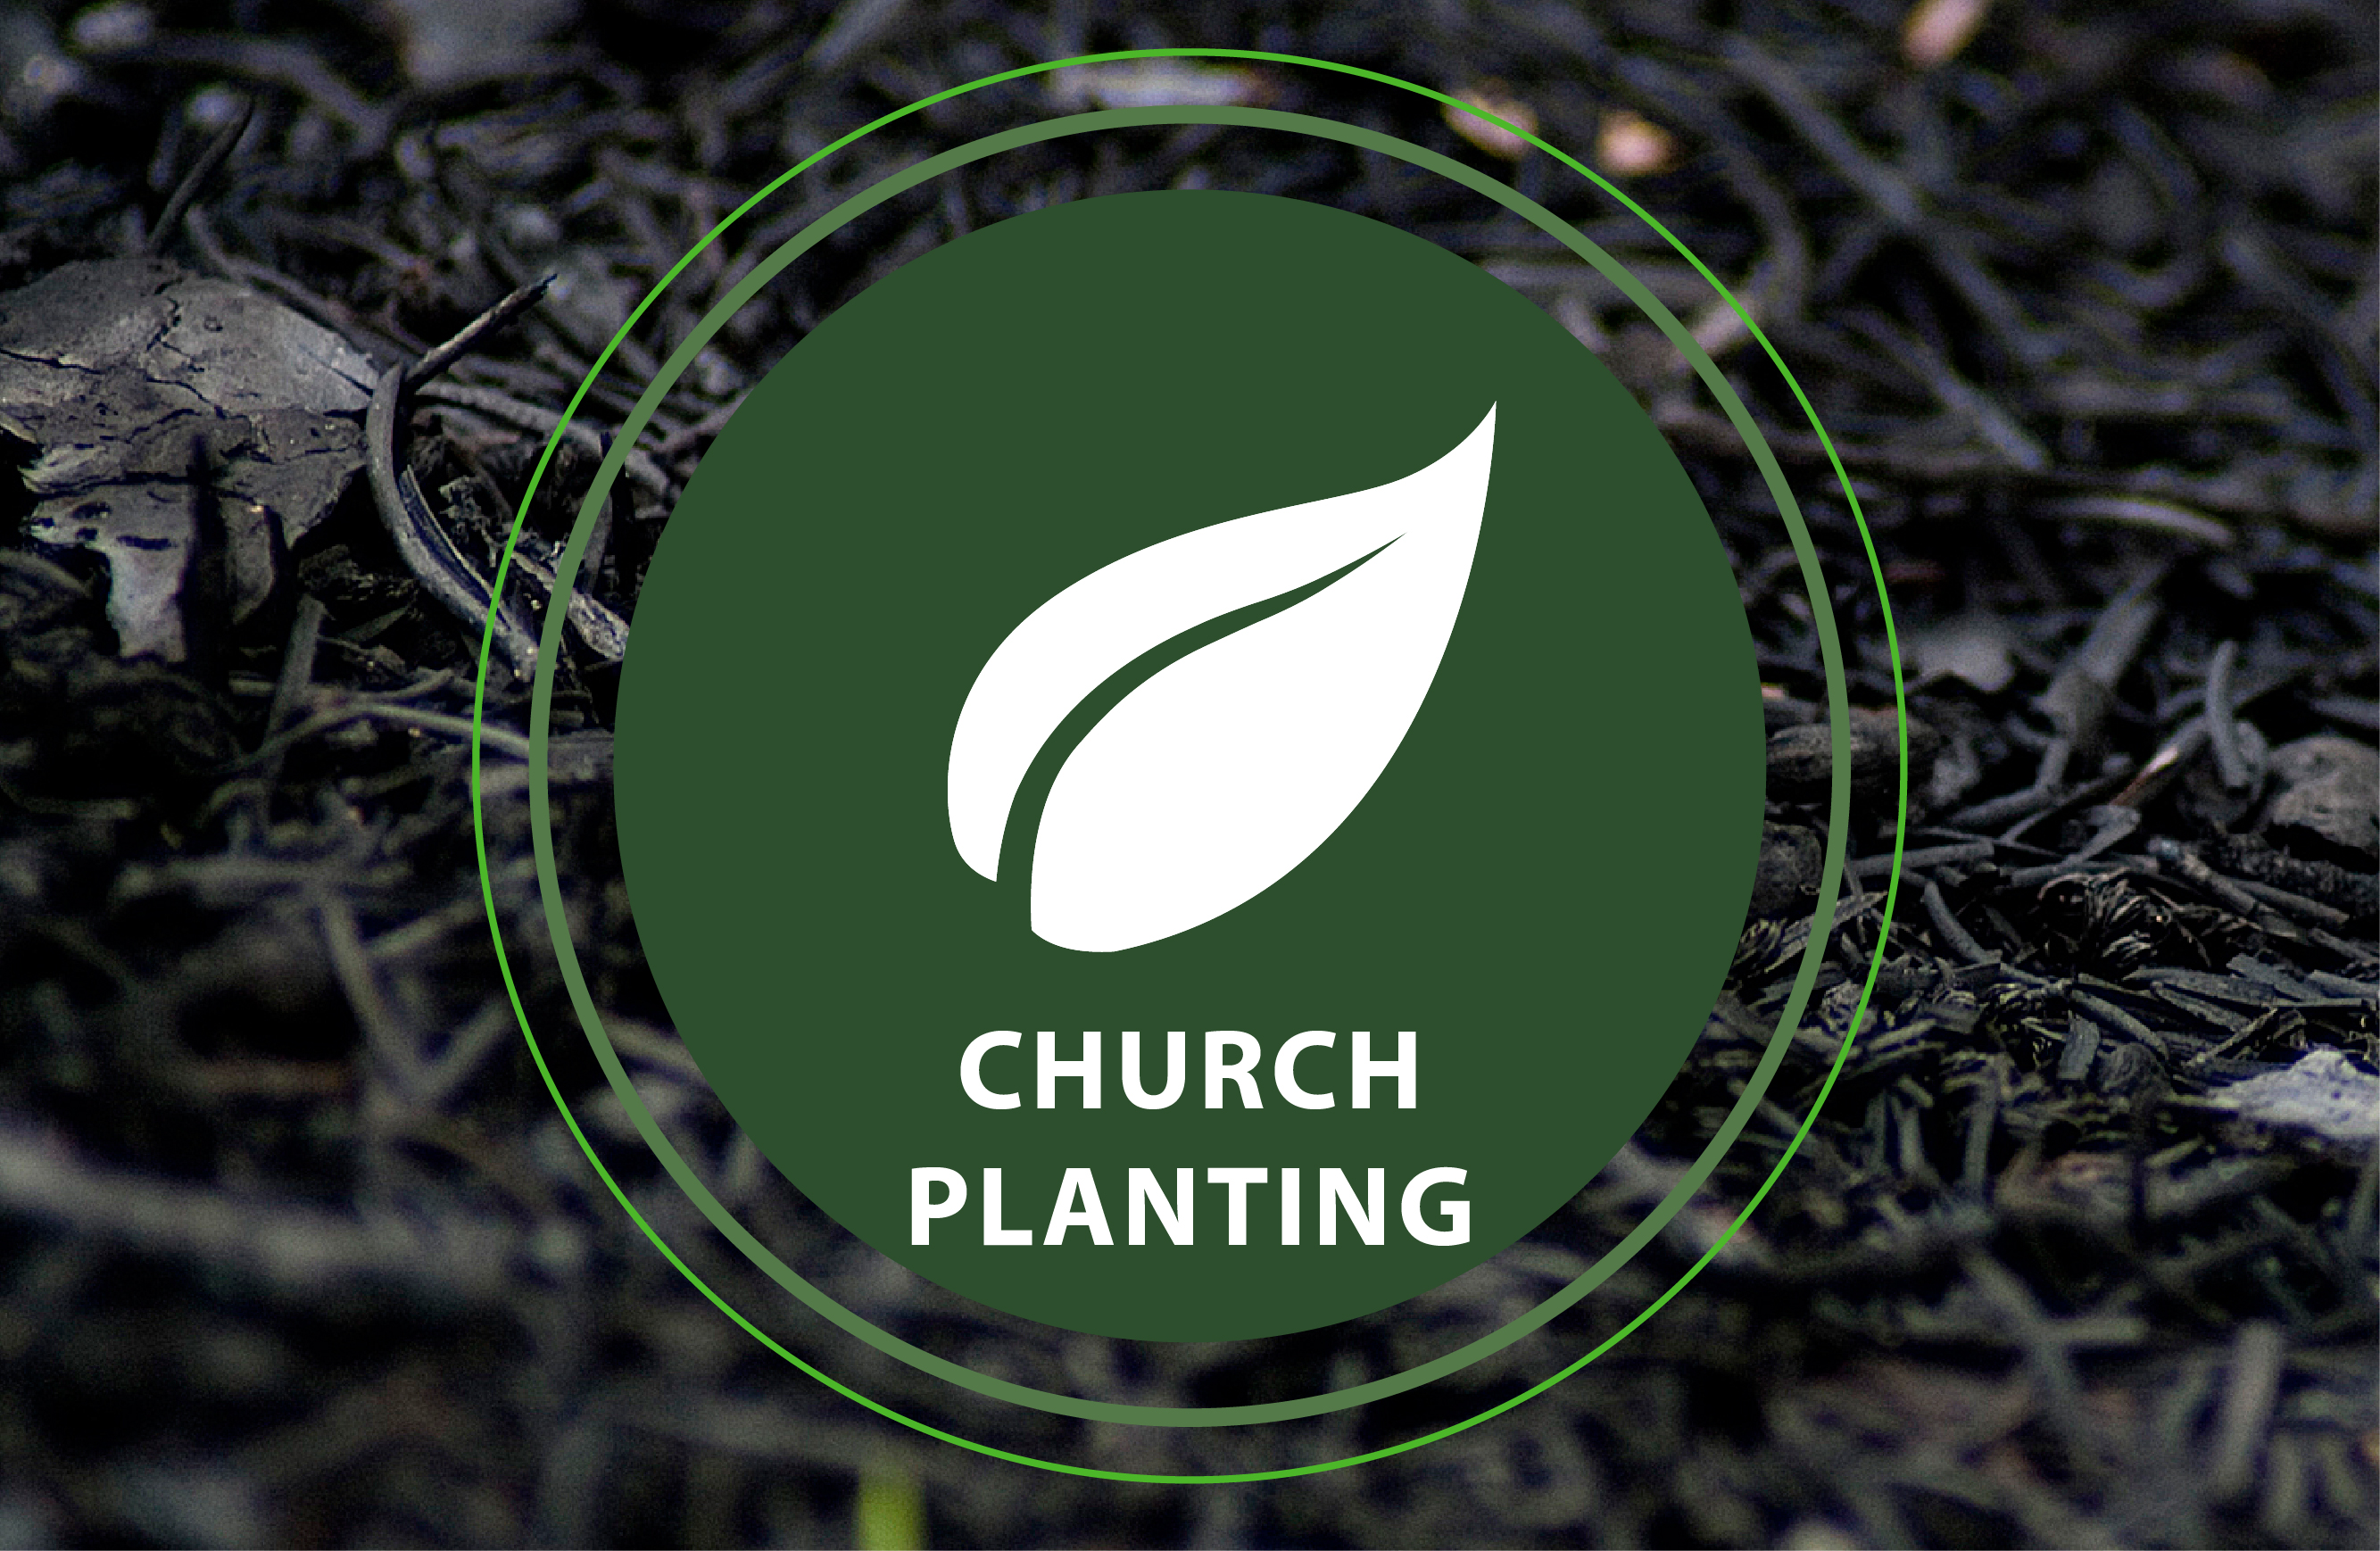 HD_ChurchPlanting-01